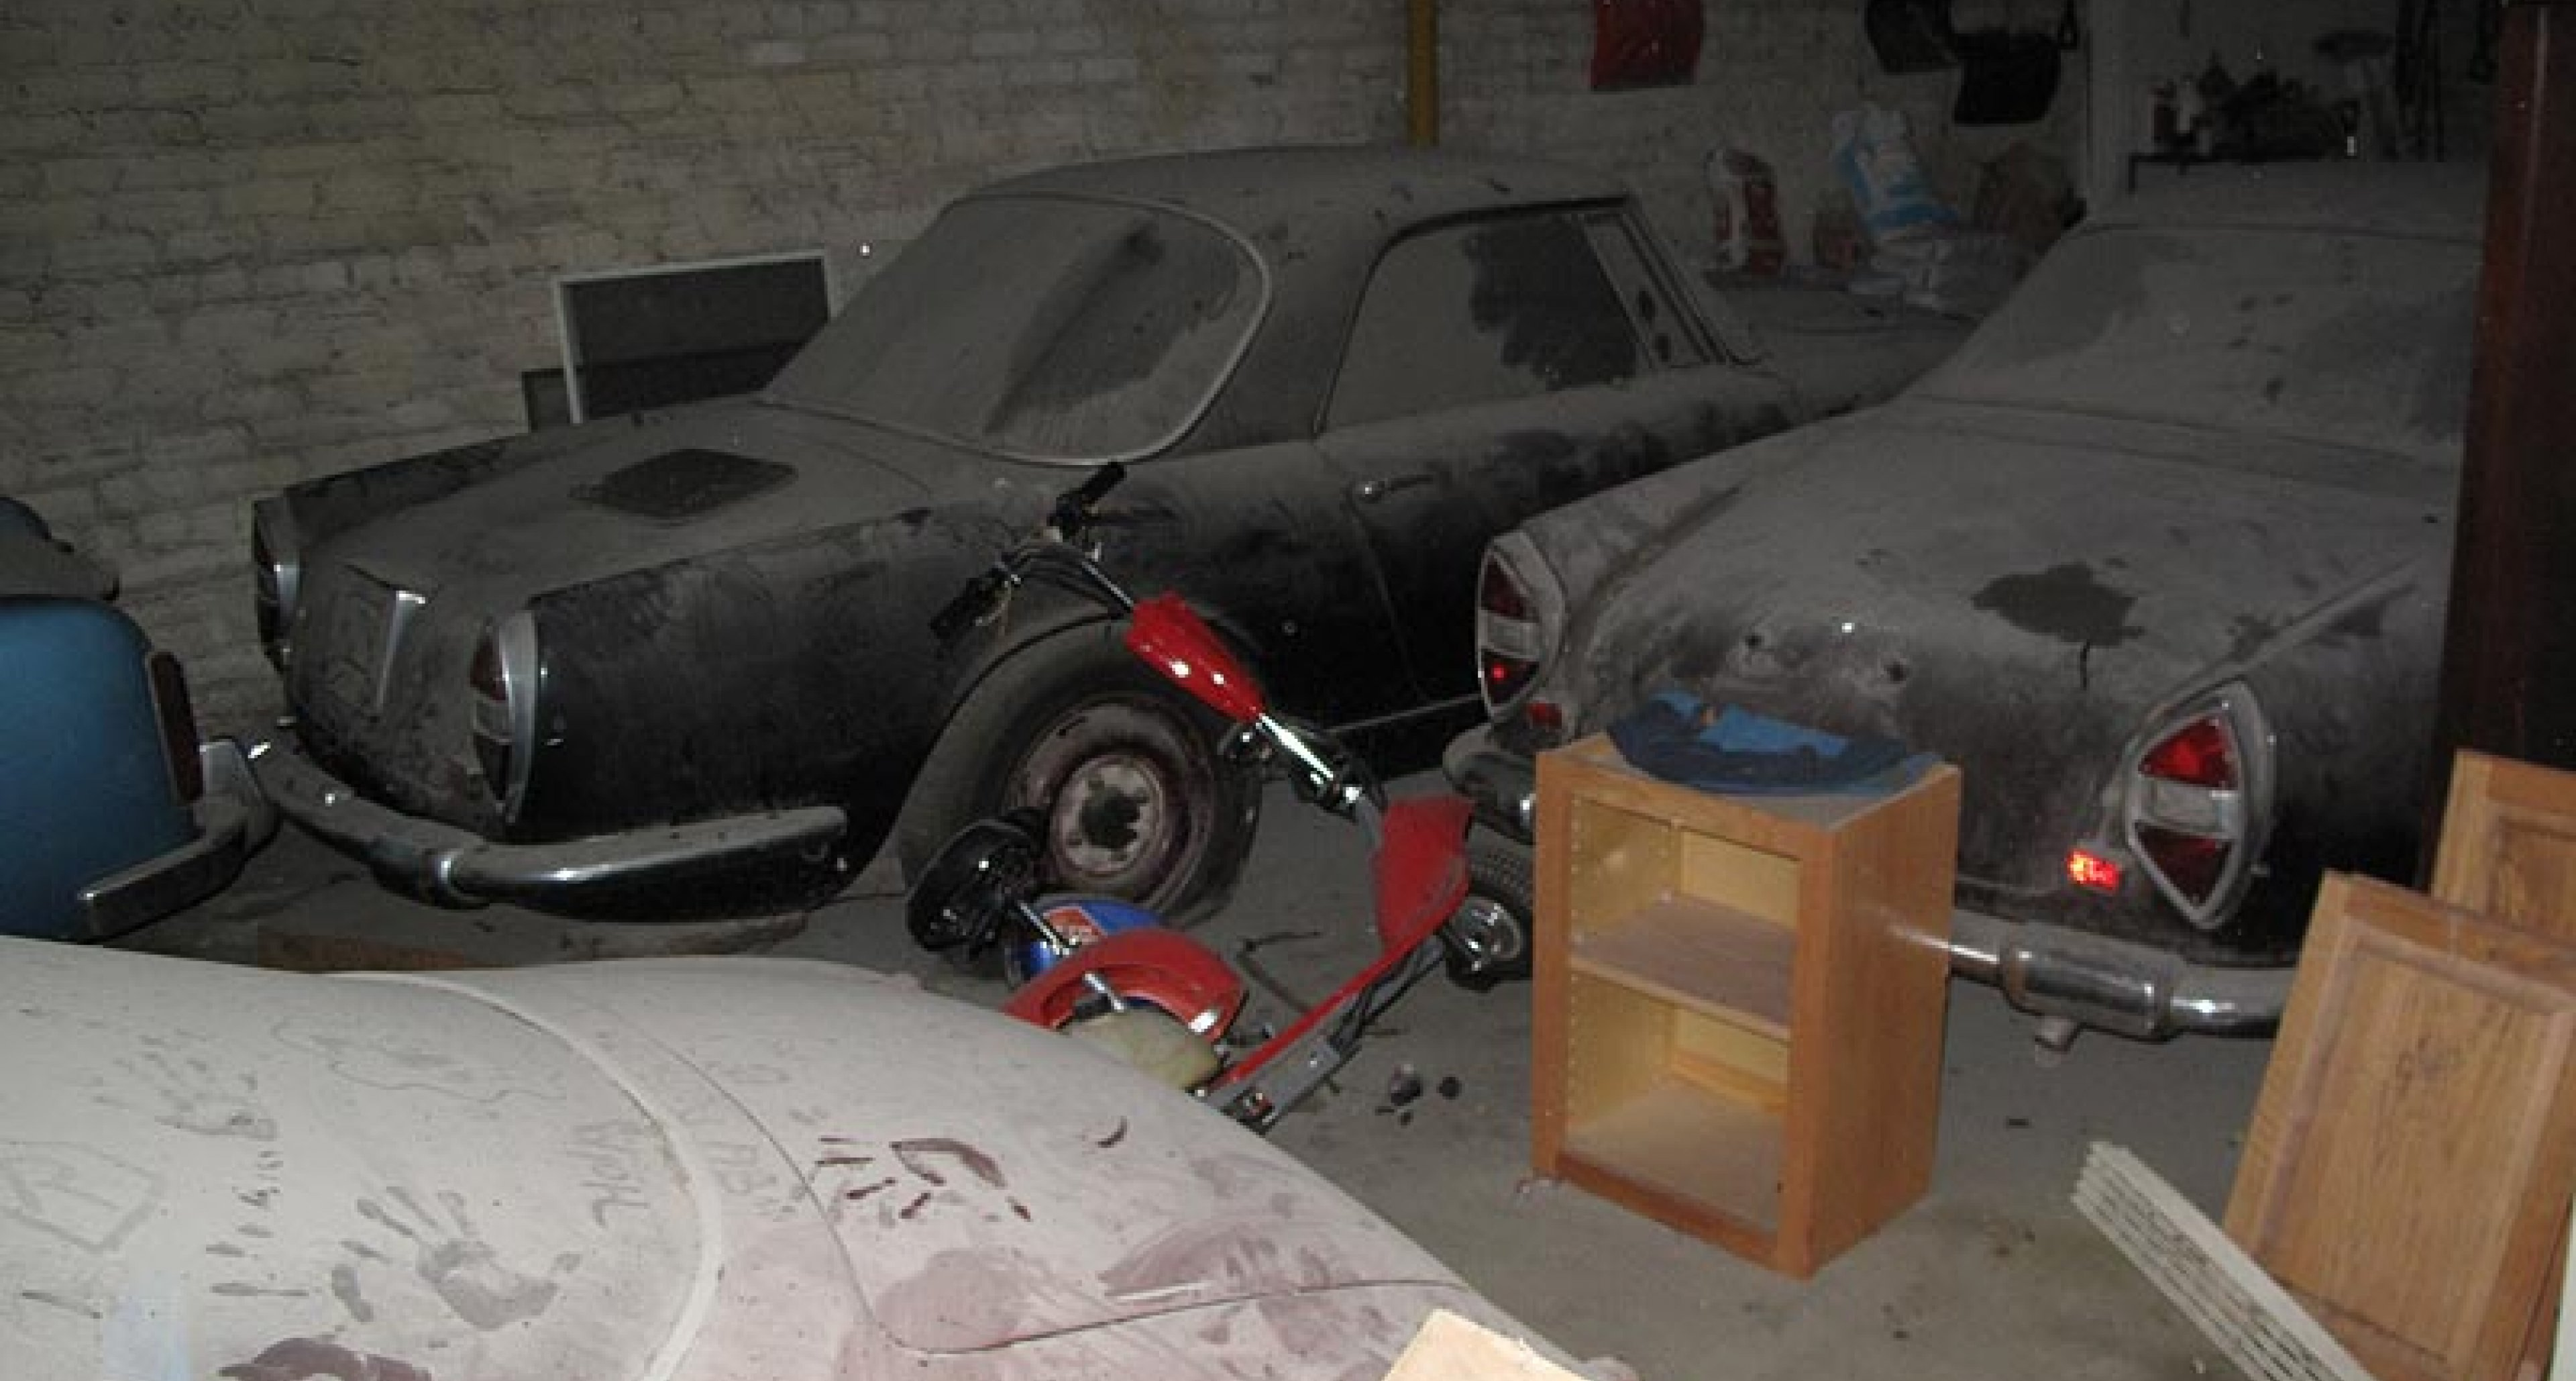 Discovered: Secret Italian 'Barn Finds' in the USA